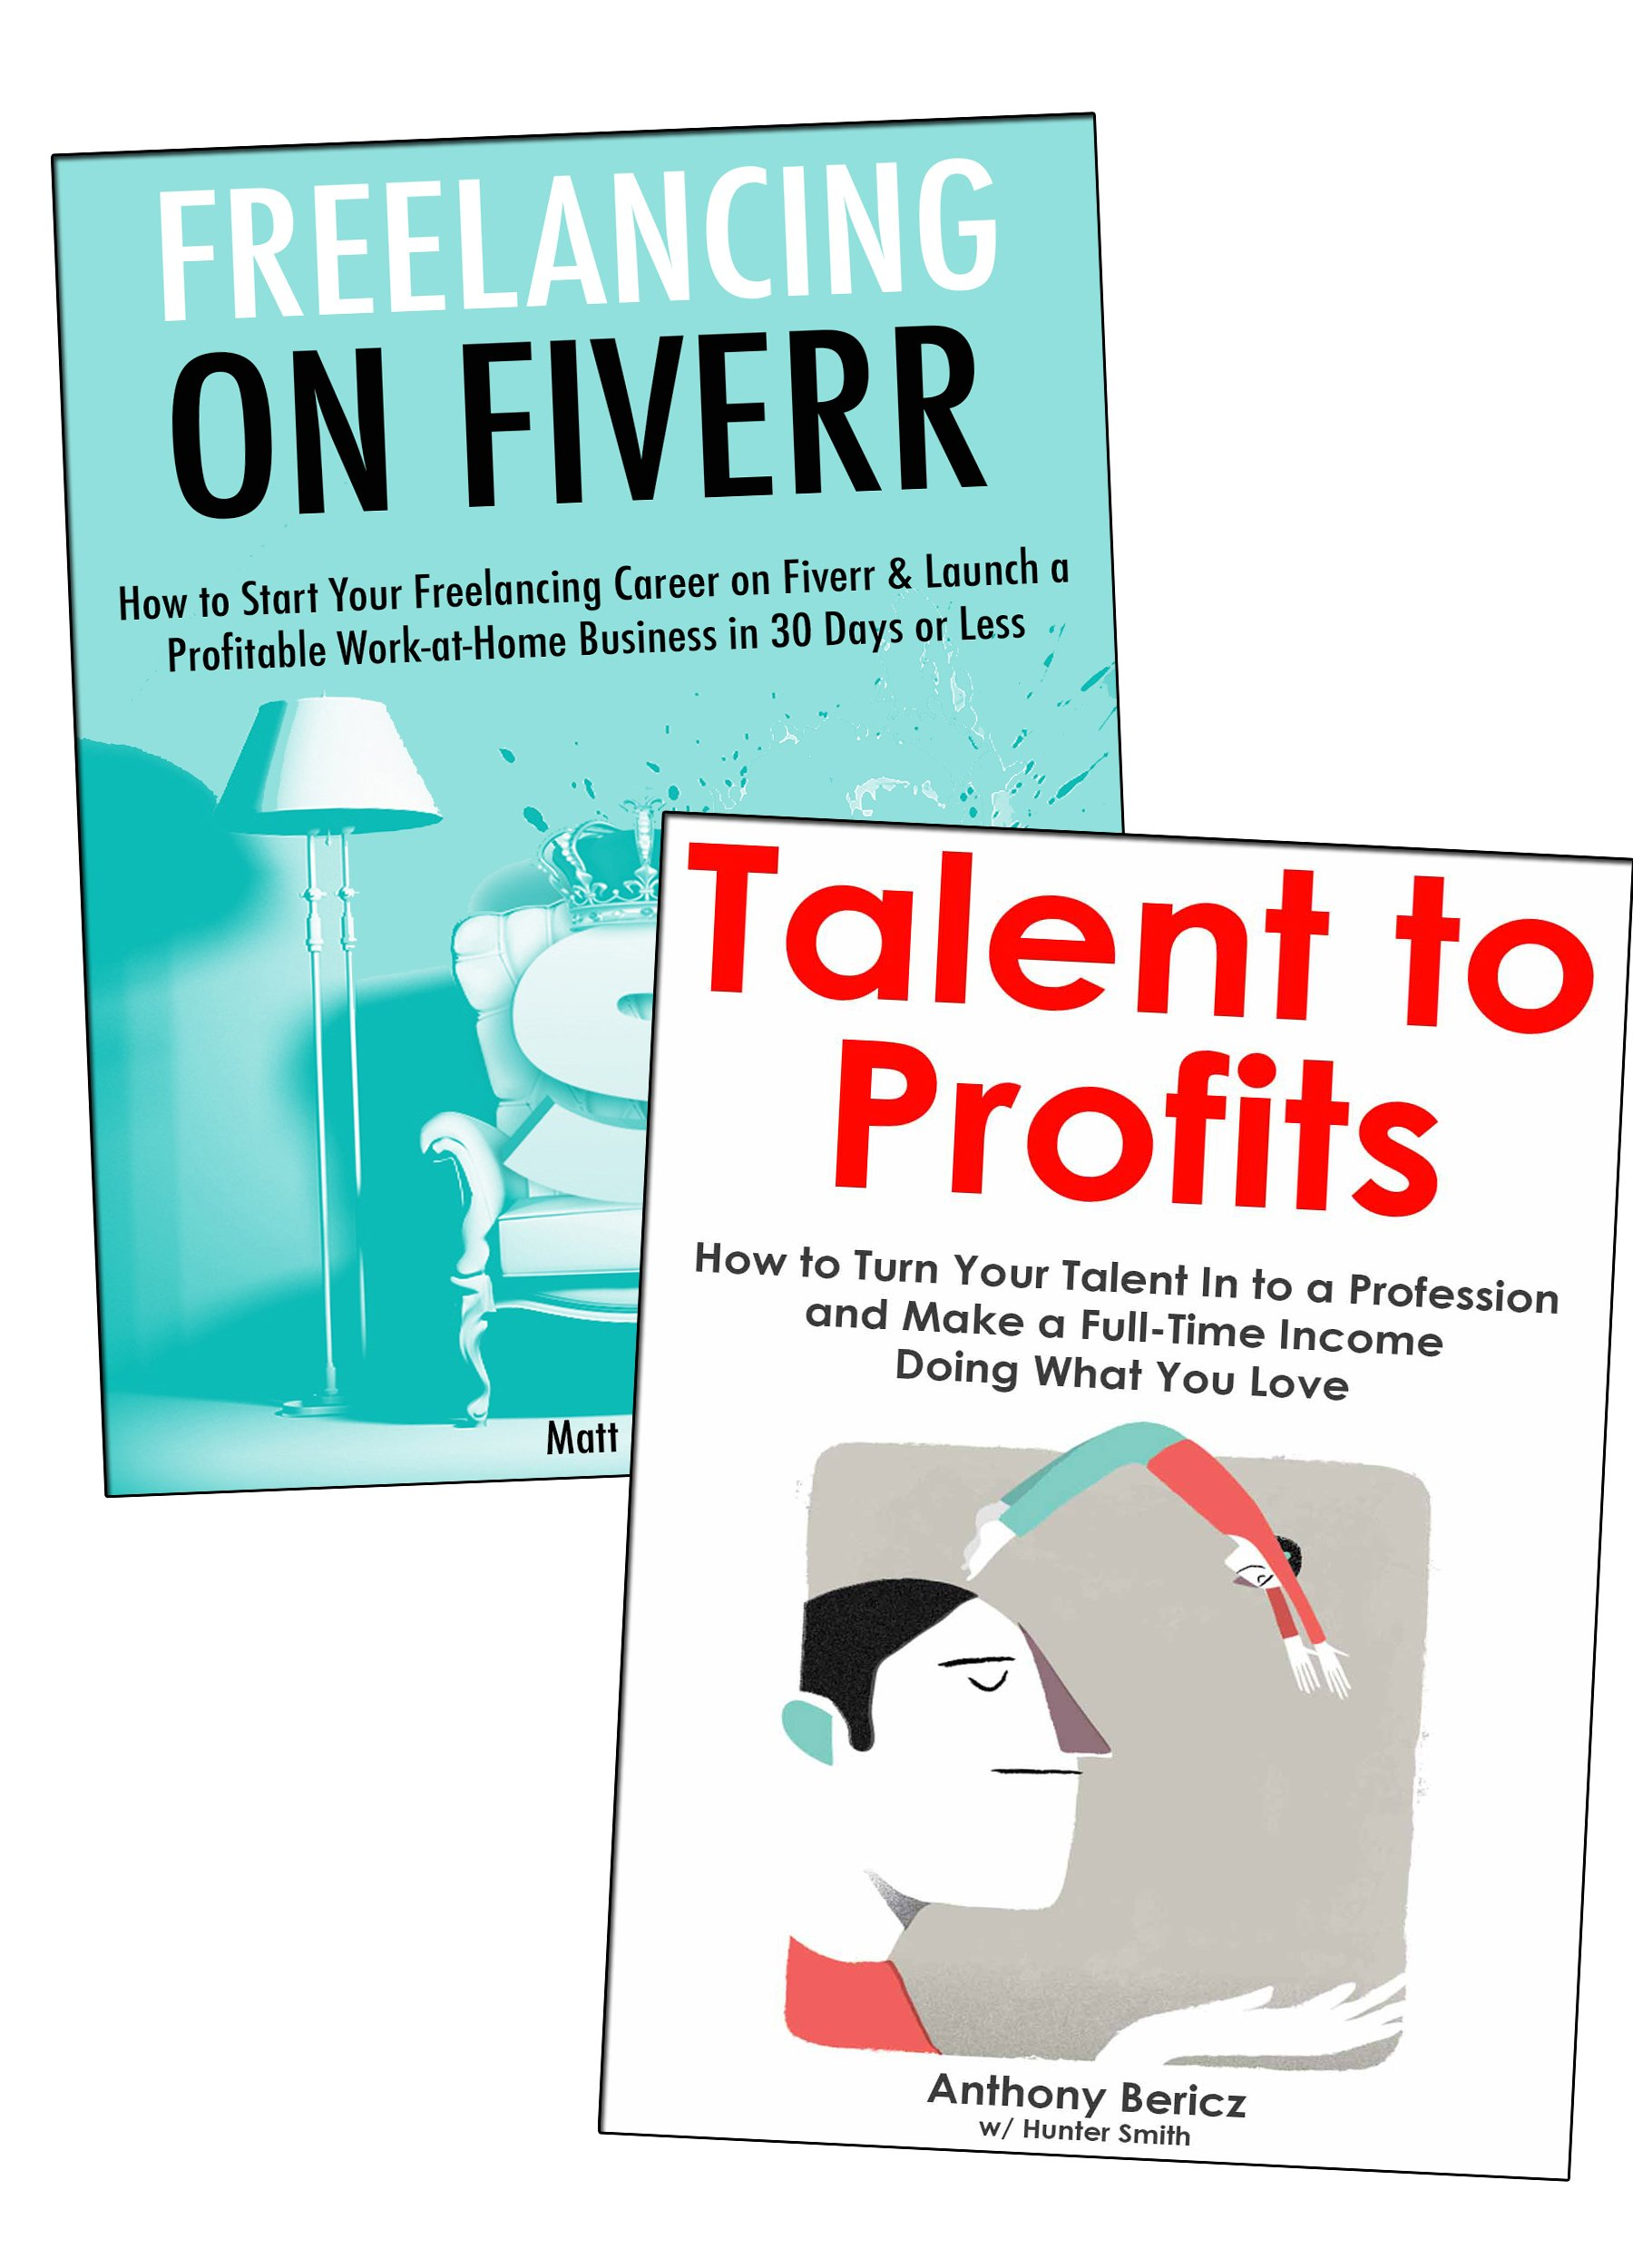 Freelance & Teach: How to Make a Living Freelancing on Fiverr & Teaching Your Passion Online